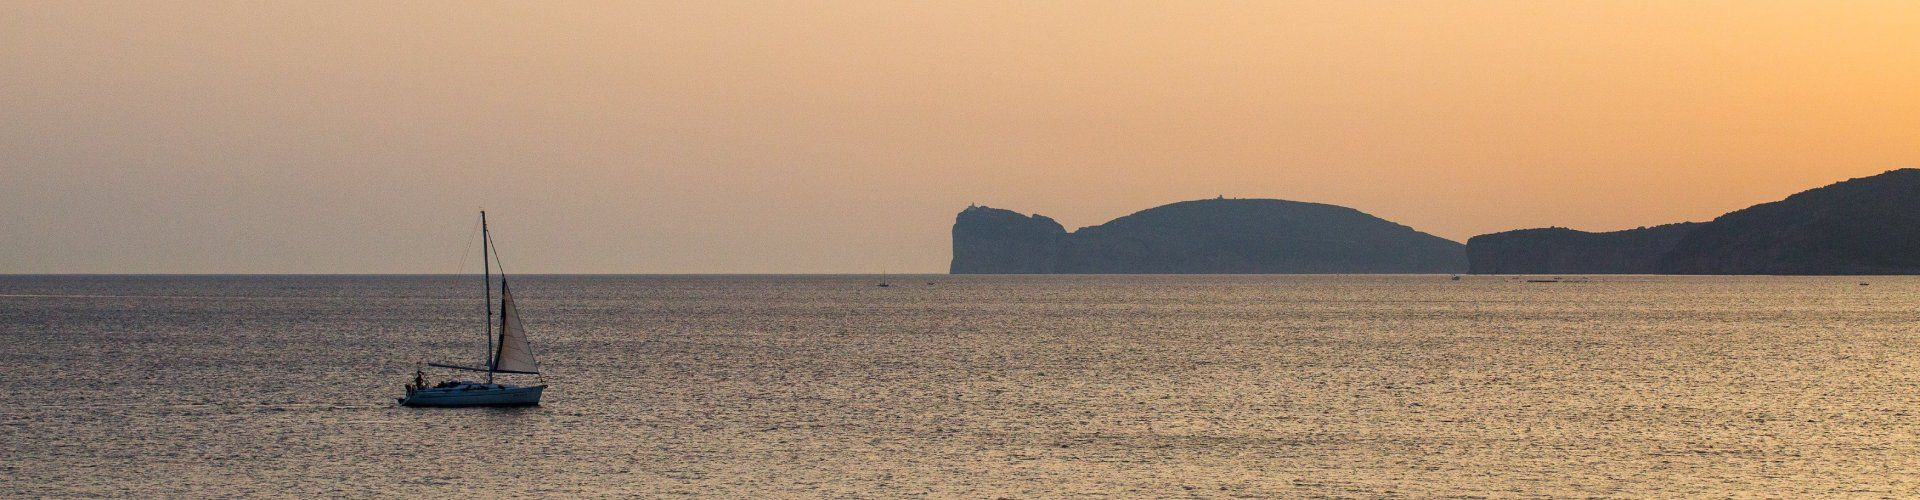 The sea seen from Alghero at sunset with a sailing boat and Capo Caccia on the horizon